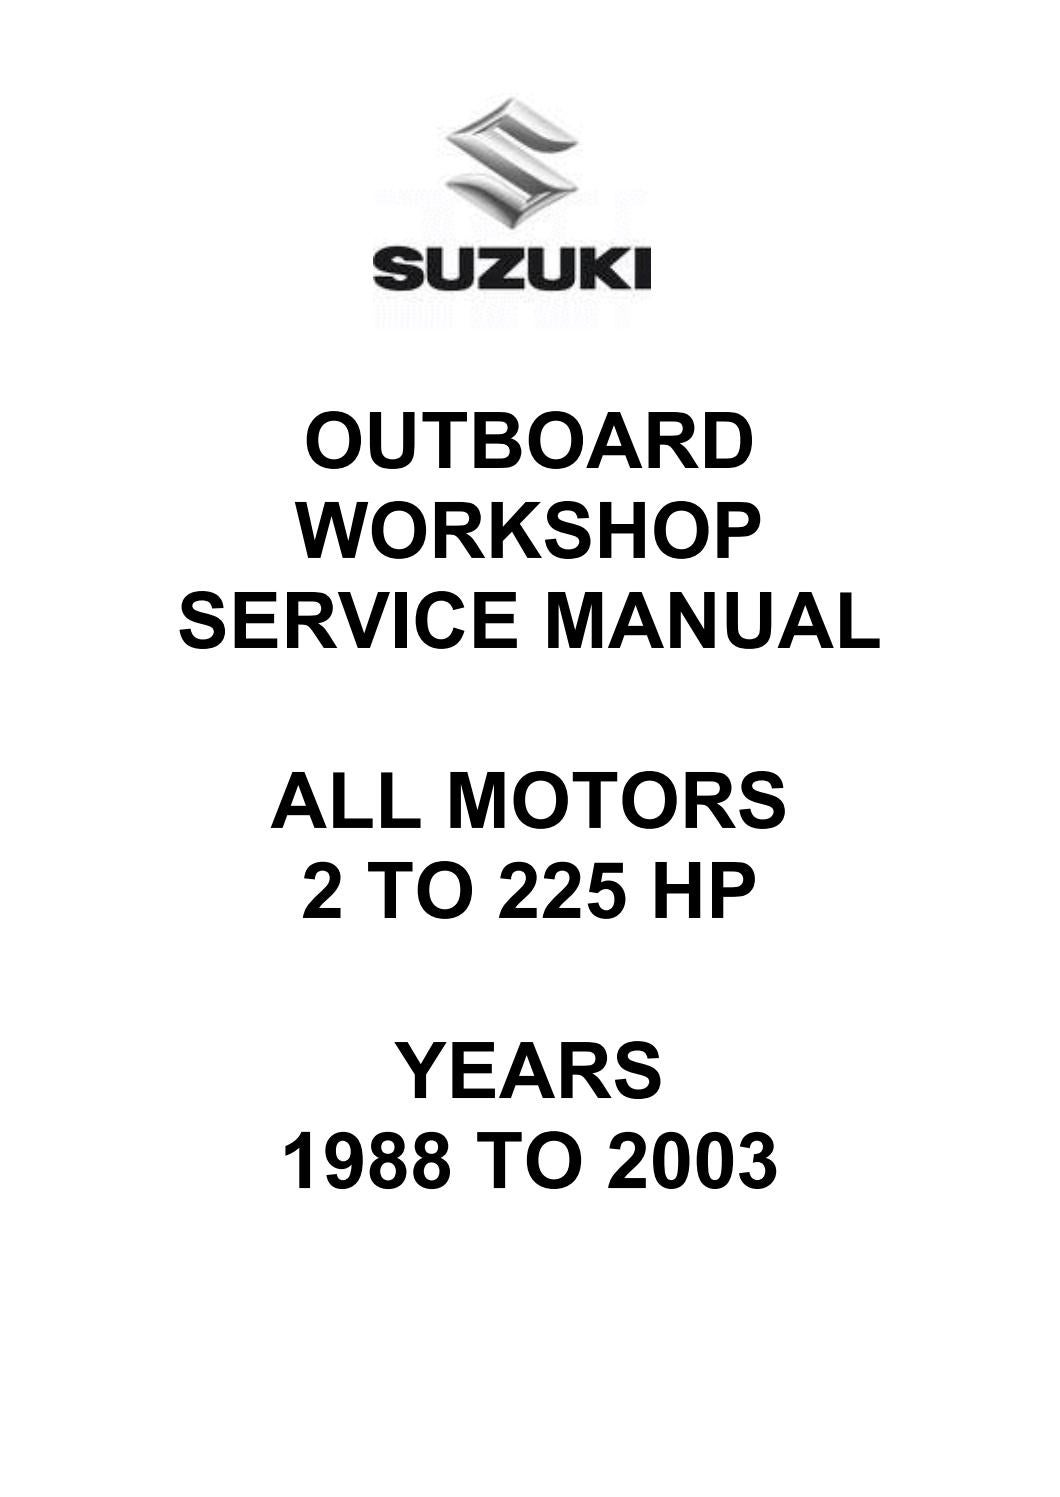 Suzuki Outboard Workshop Service Manual All Motors By Glsense Issuu Honda Cr 125 Cdi Ignition System Wiring Schematic